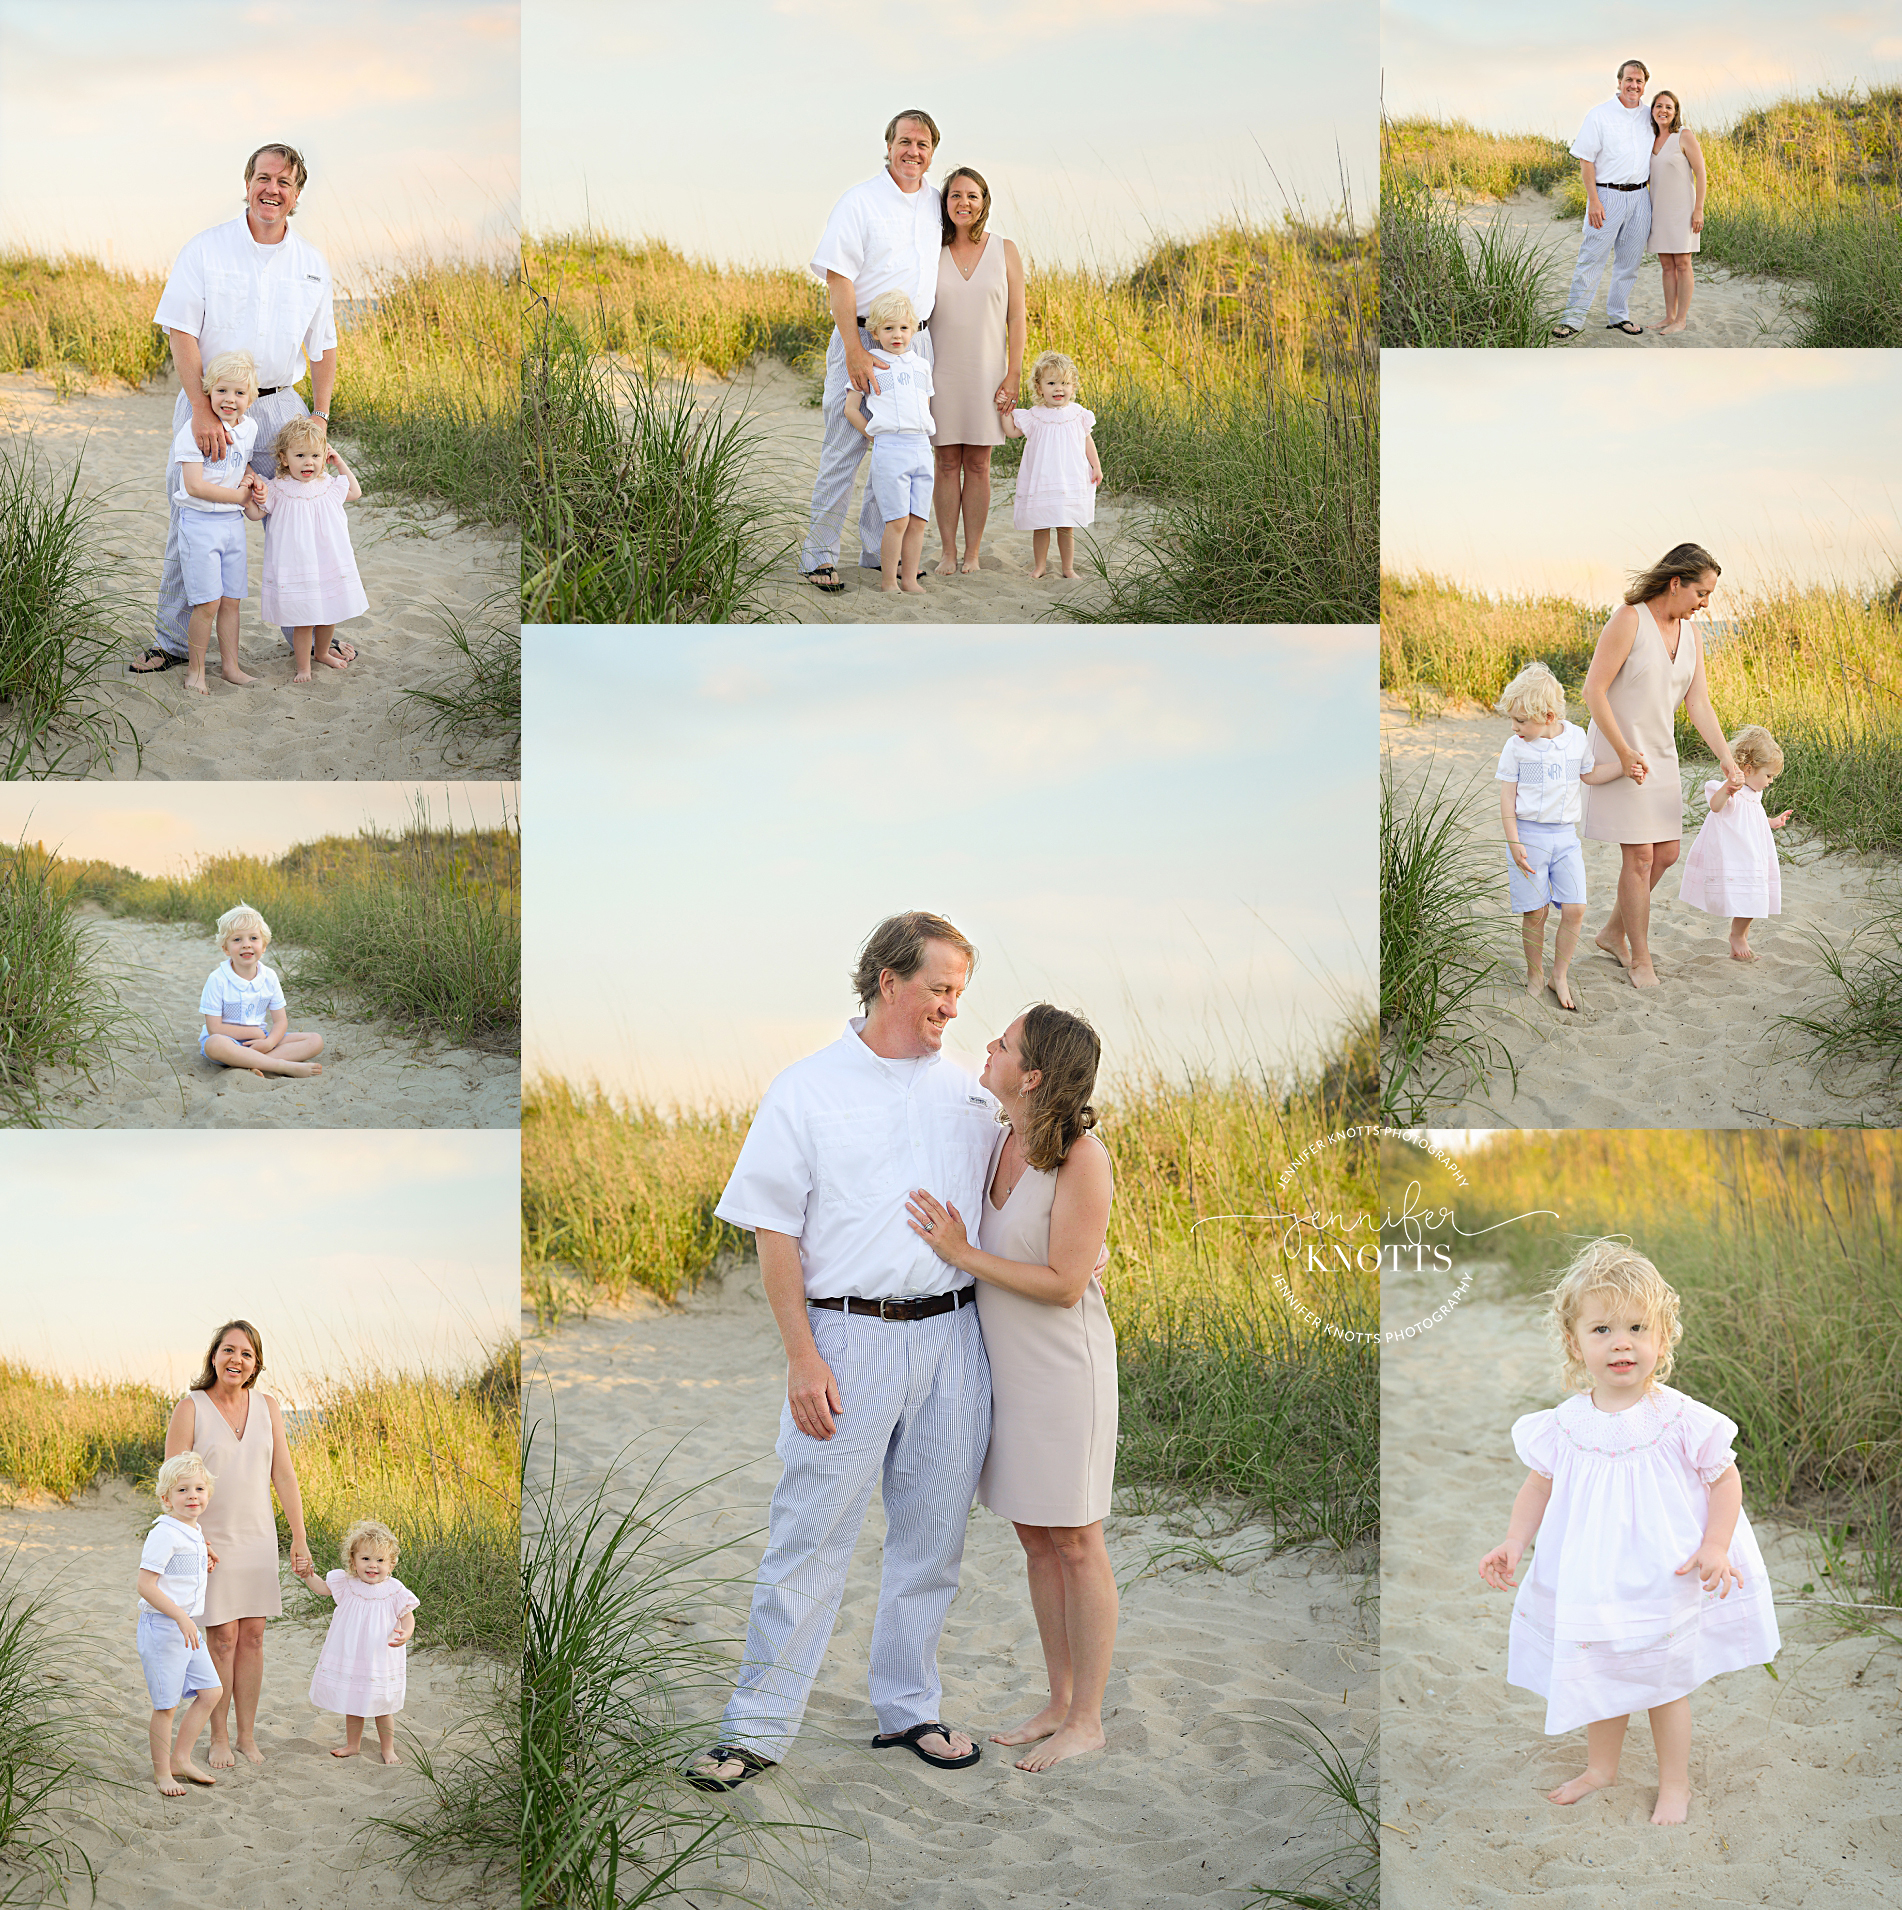 oak island nc photographer captures family of four playing on the beach